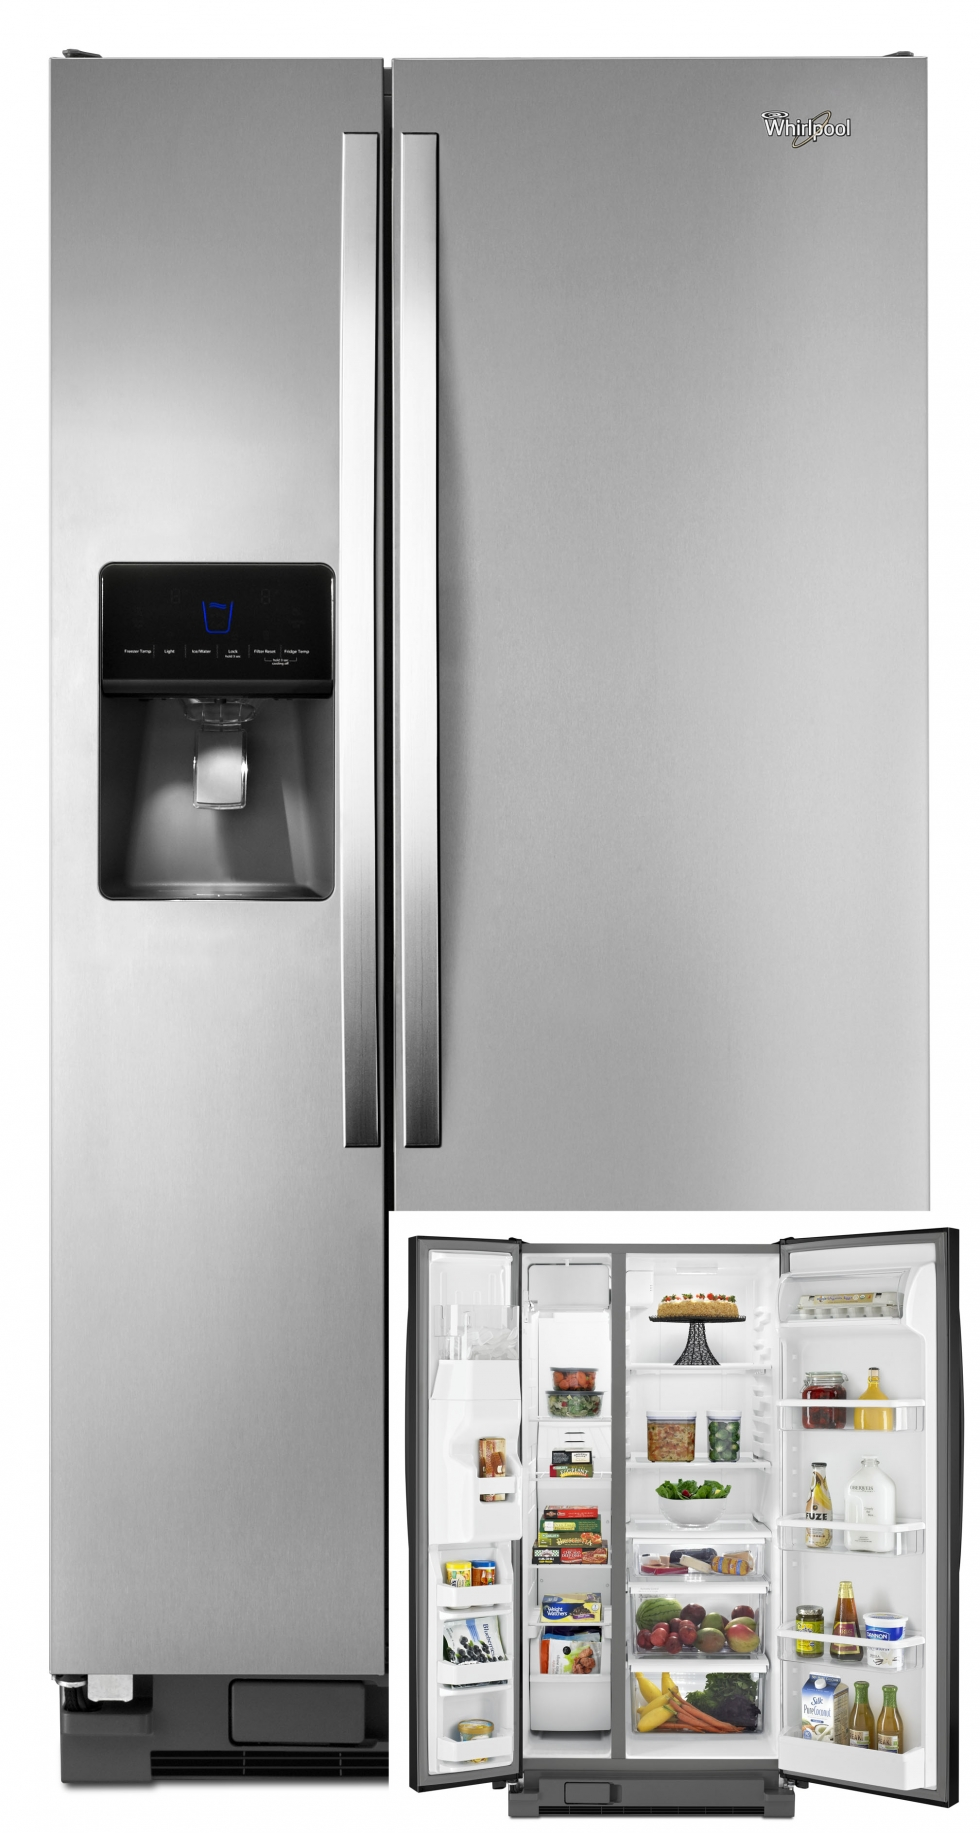 Whirlpool Side By Side Refrigerator Stainless Steel